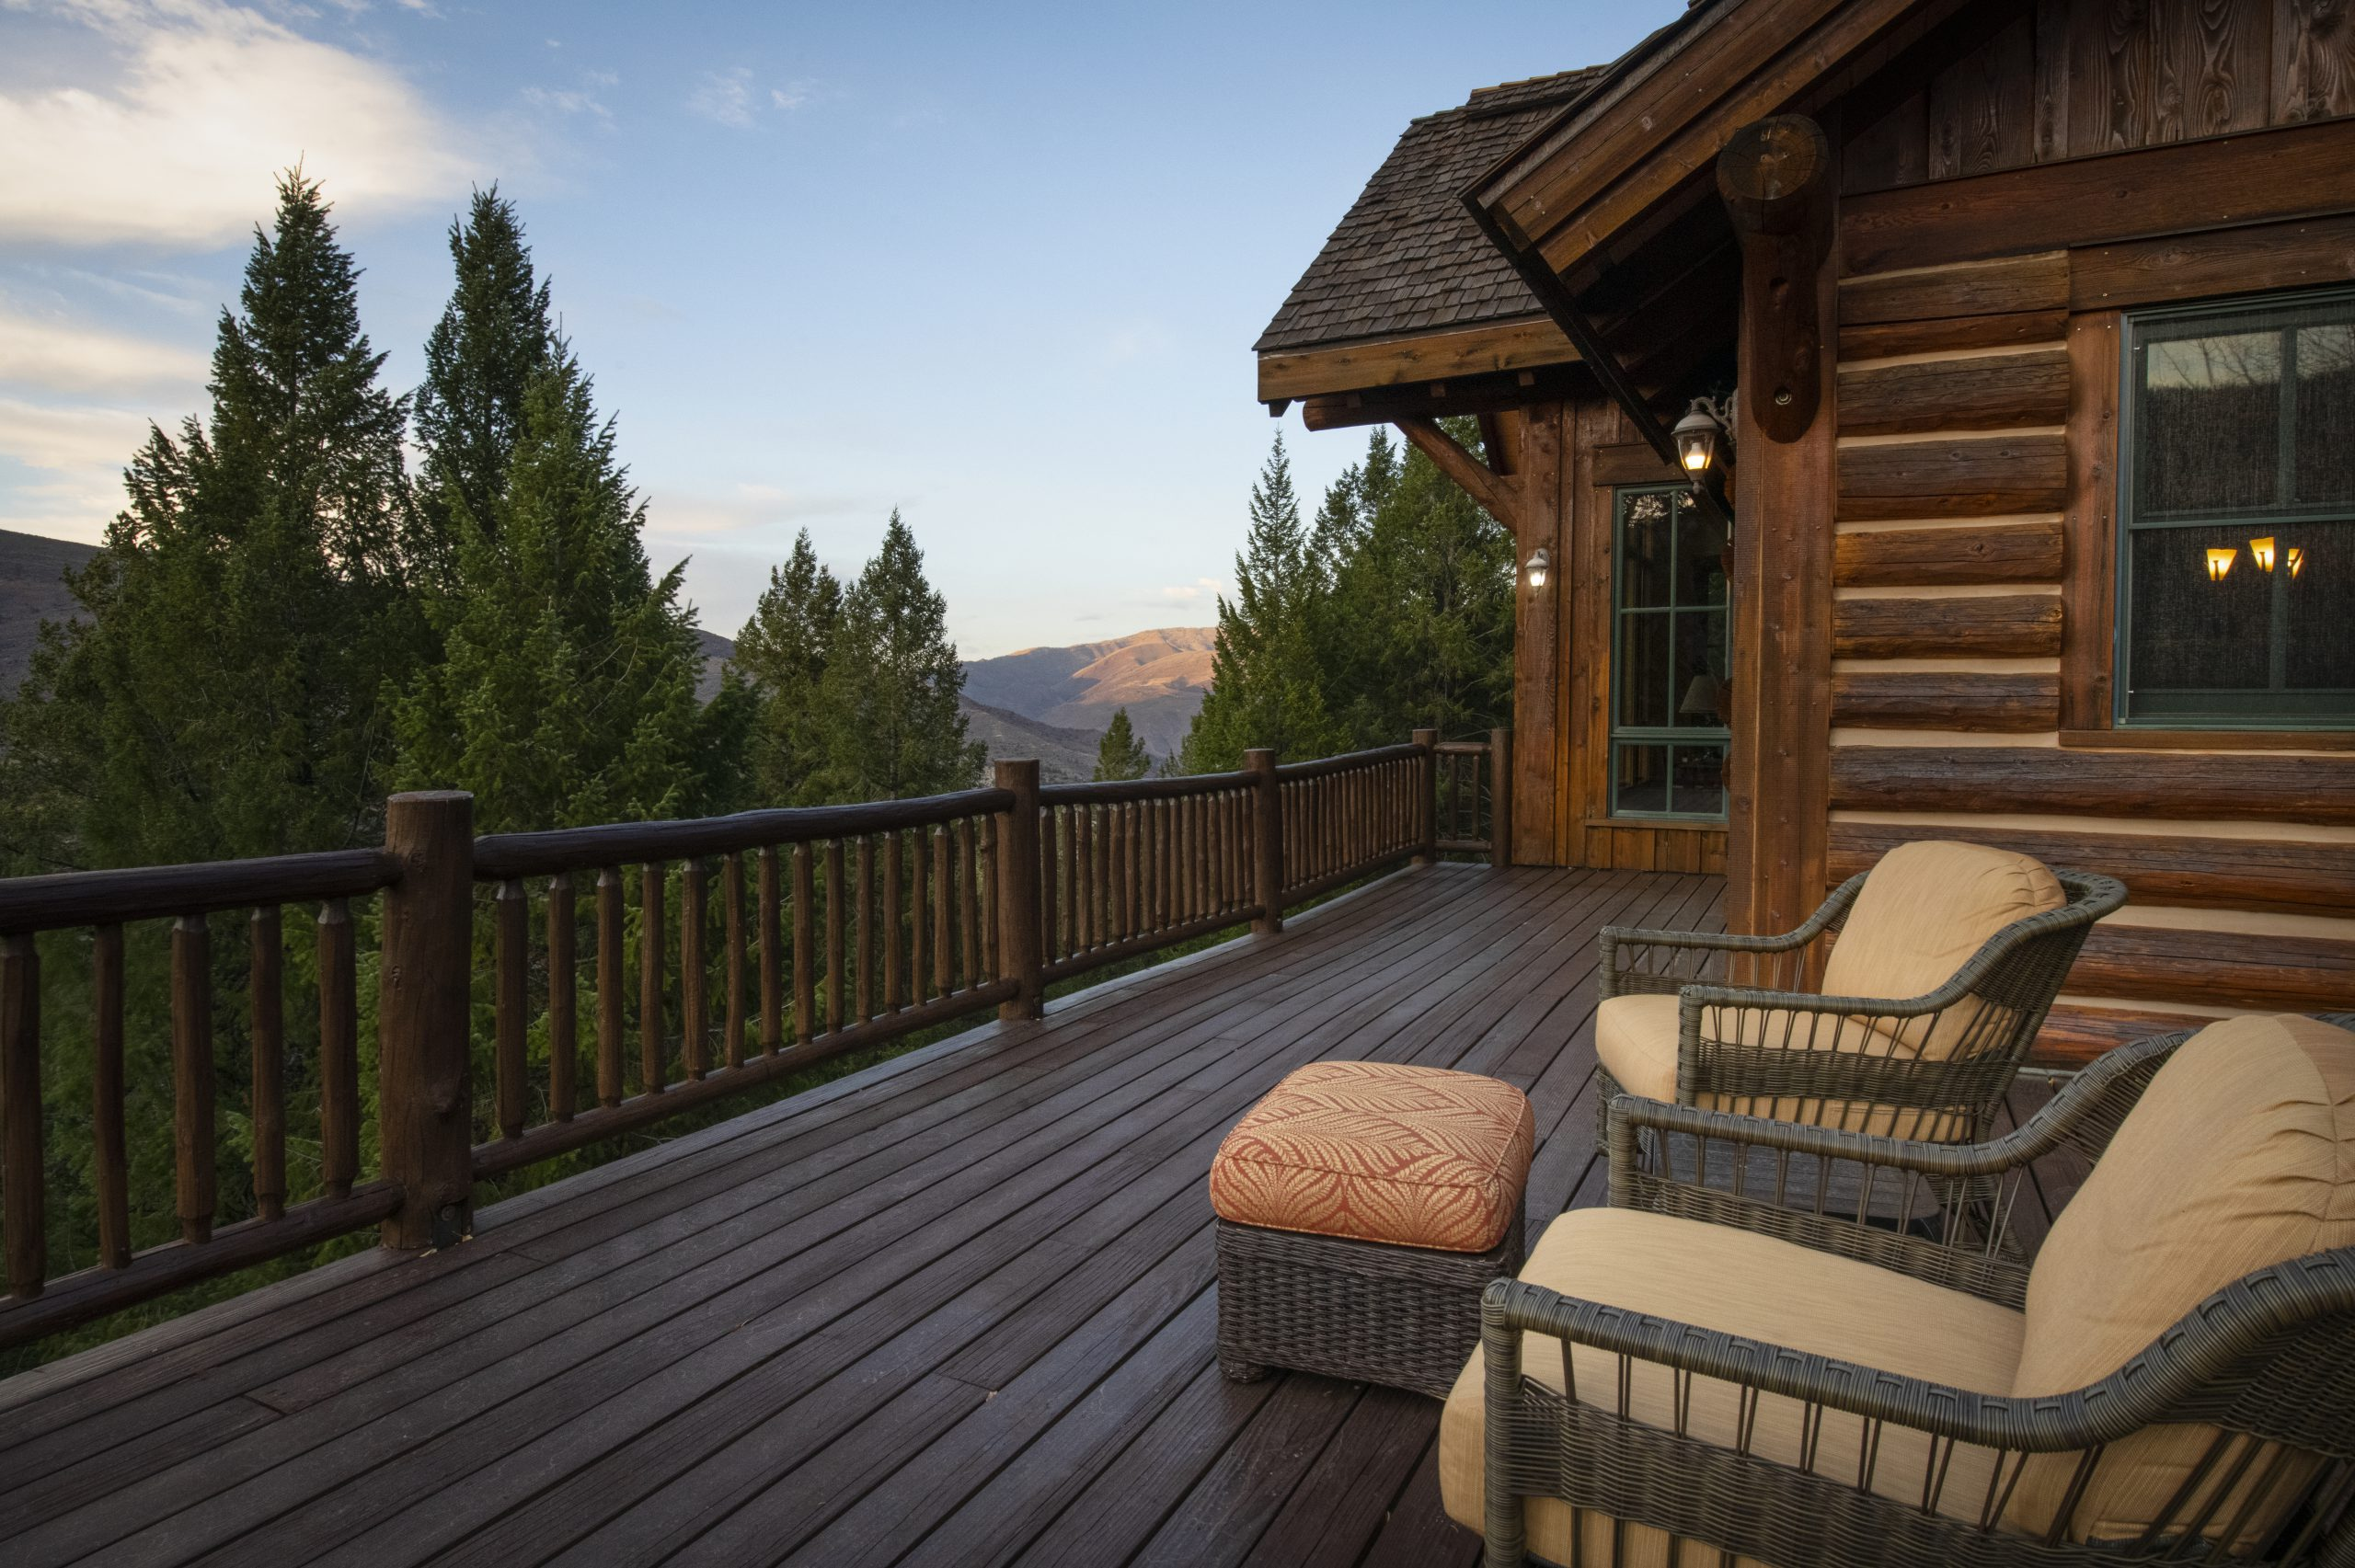 Deck Outside of House